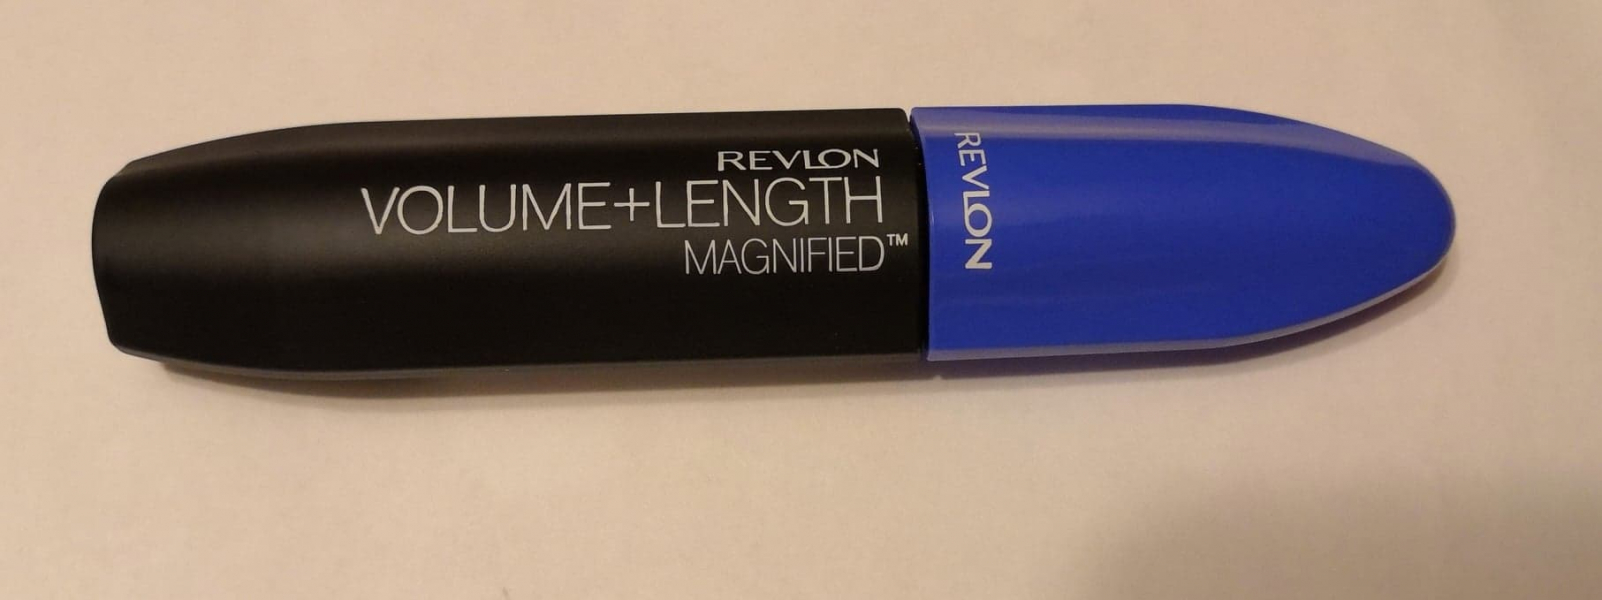 Swatch Volume  Length Magnified, Revlon